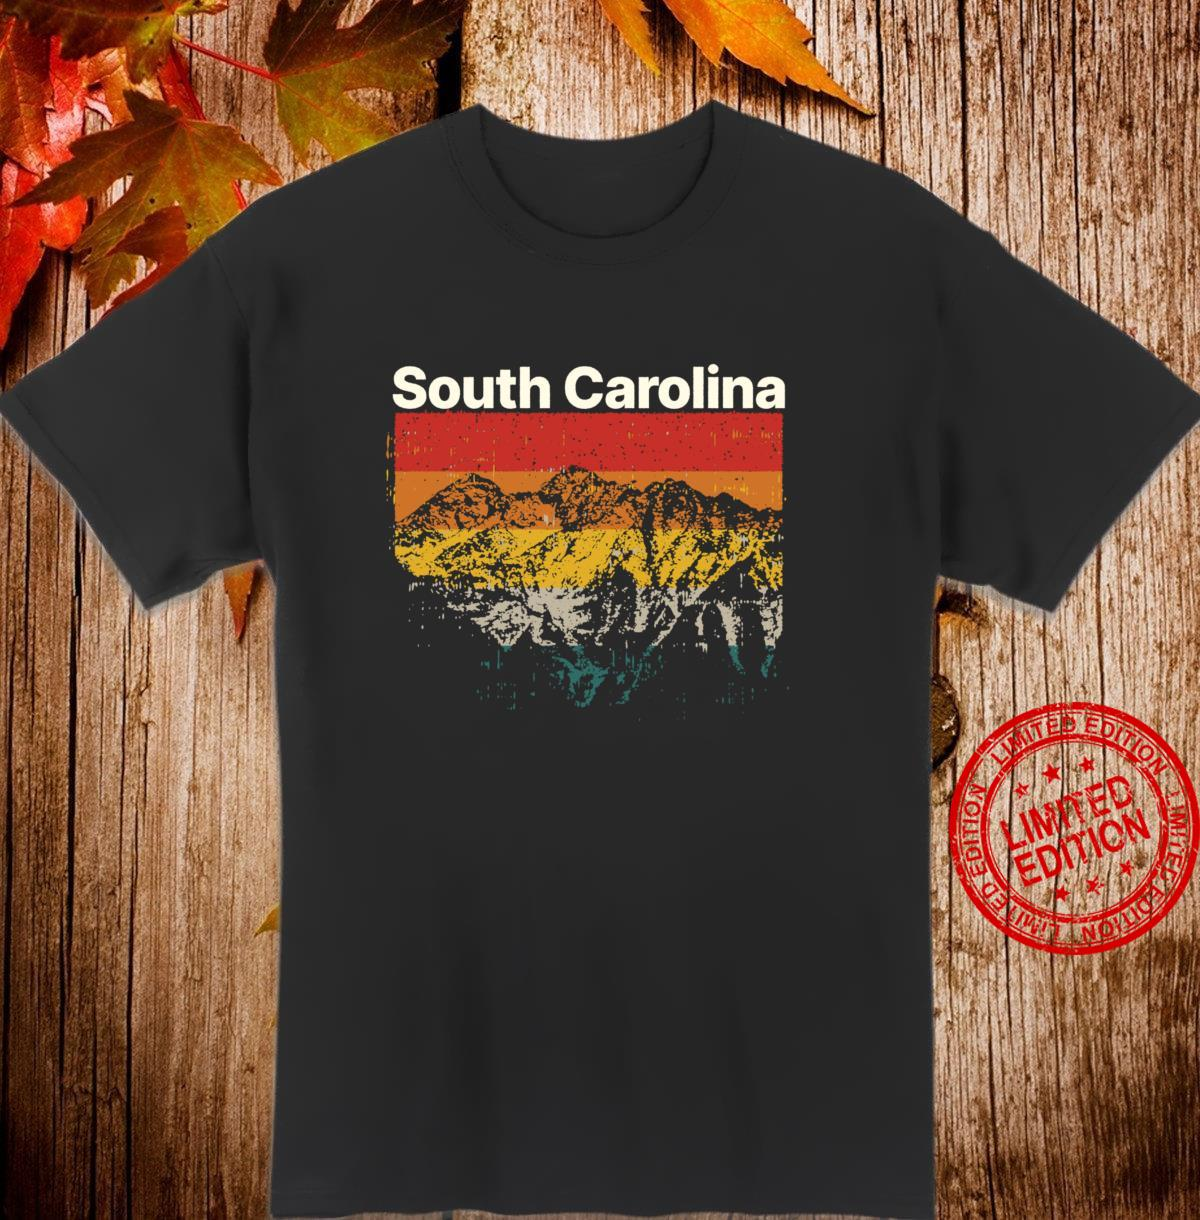 South Carolina Vintage Mountain Outdoors Hiking Souvenir Shirt